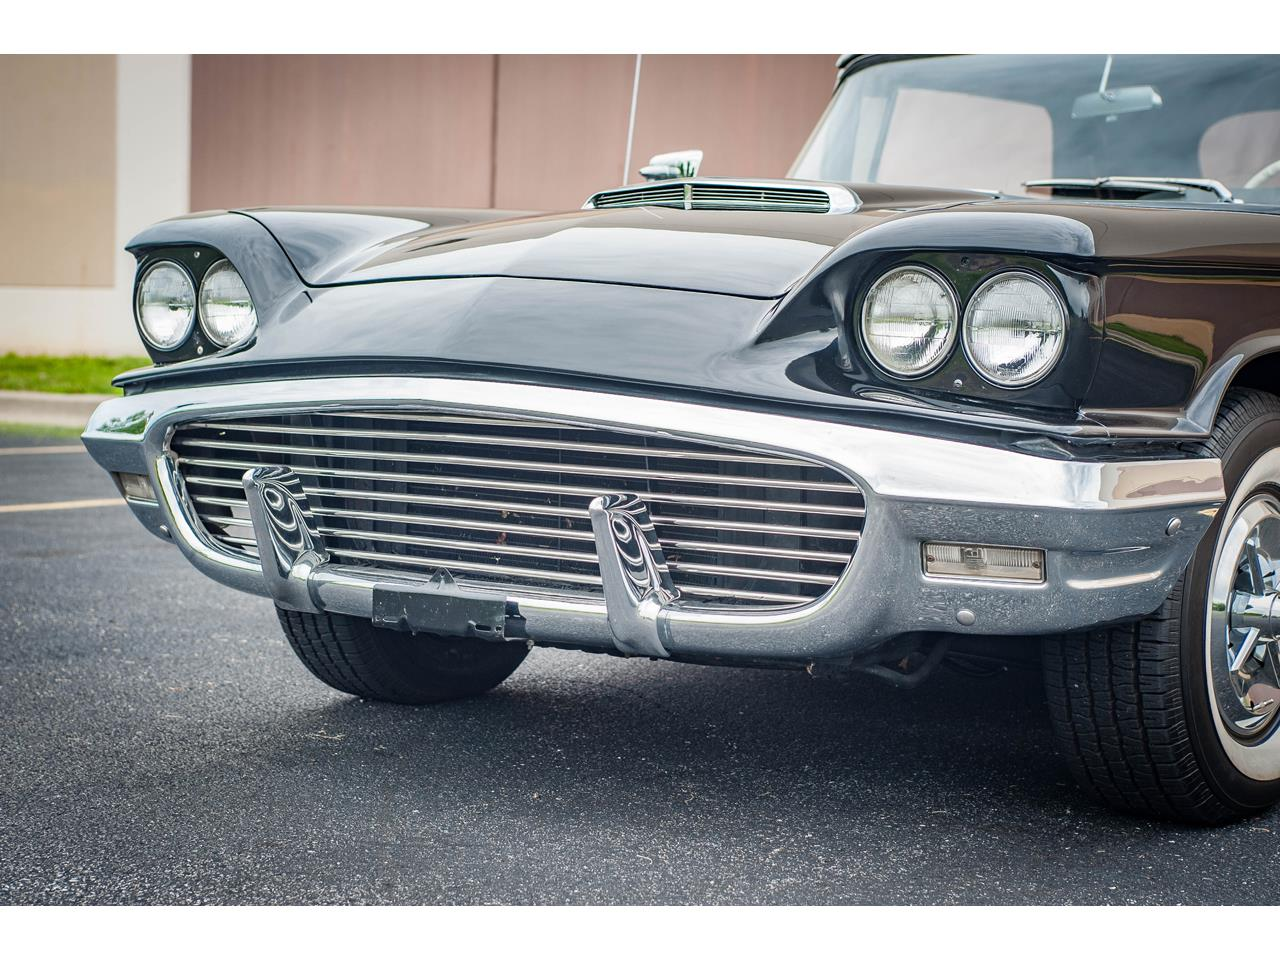 Large Picture of 1960 Ford Thunderbird Offered by Gateway Classic Cars - St. Louis - QB9W